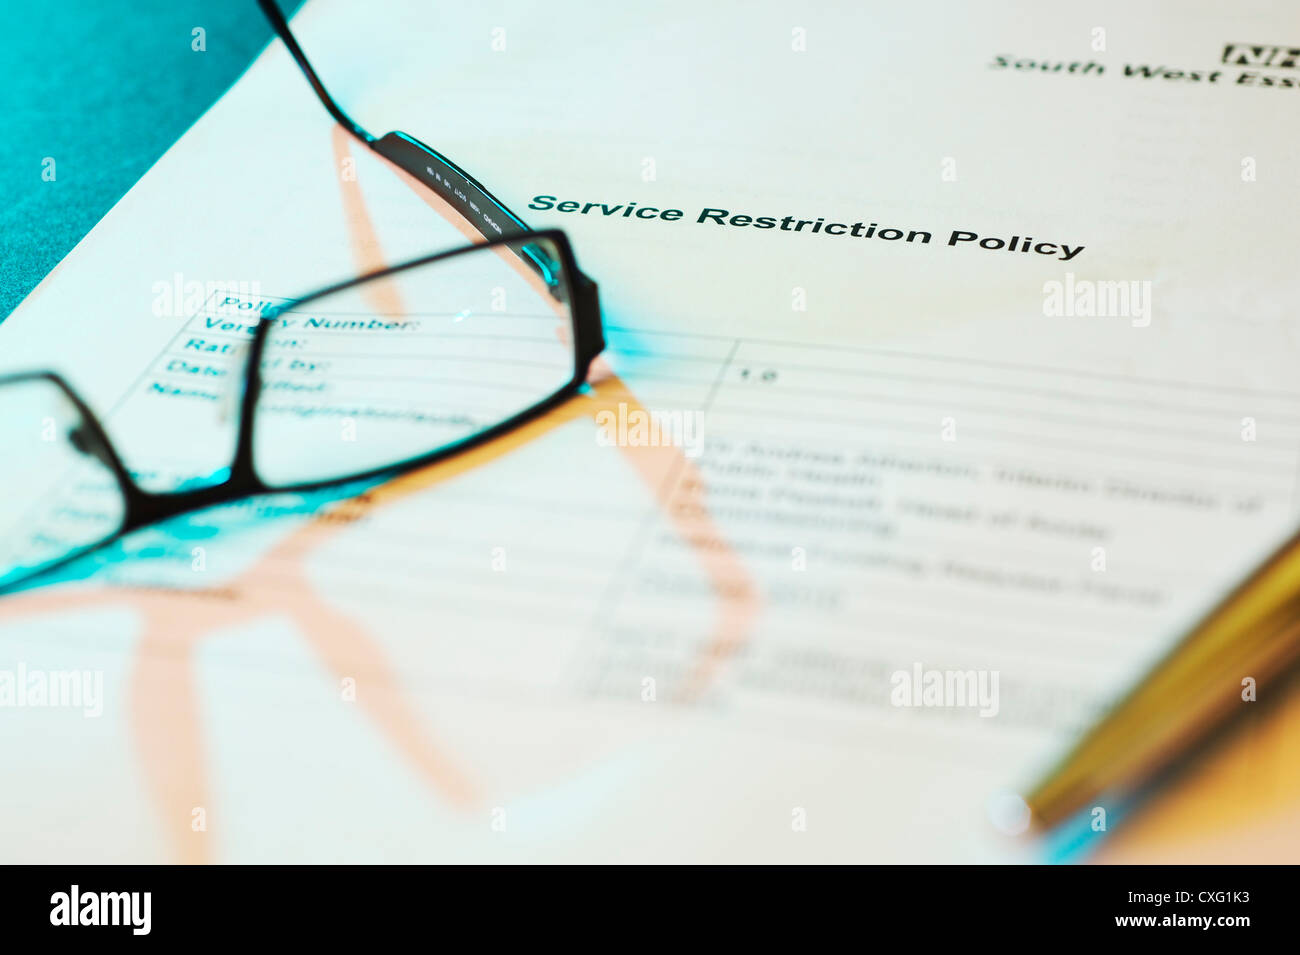 GP Glasses laying on a NHS service restriction policy document with atmospheric lighting and pen - Stock Image